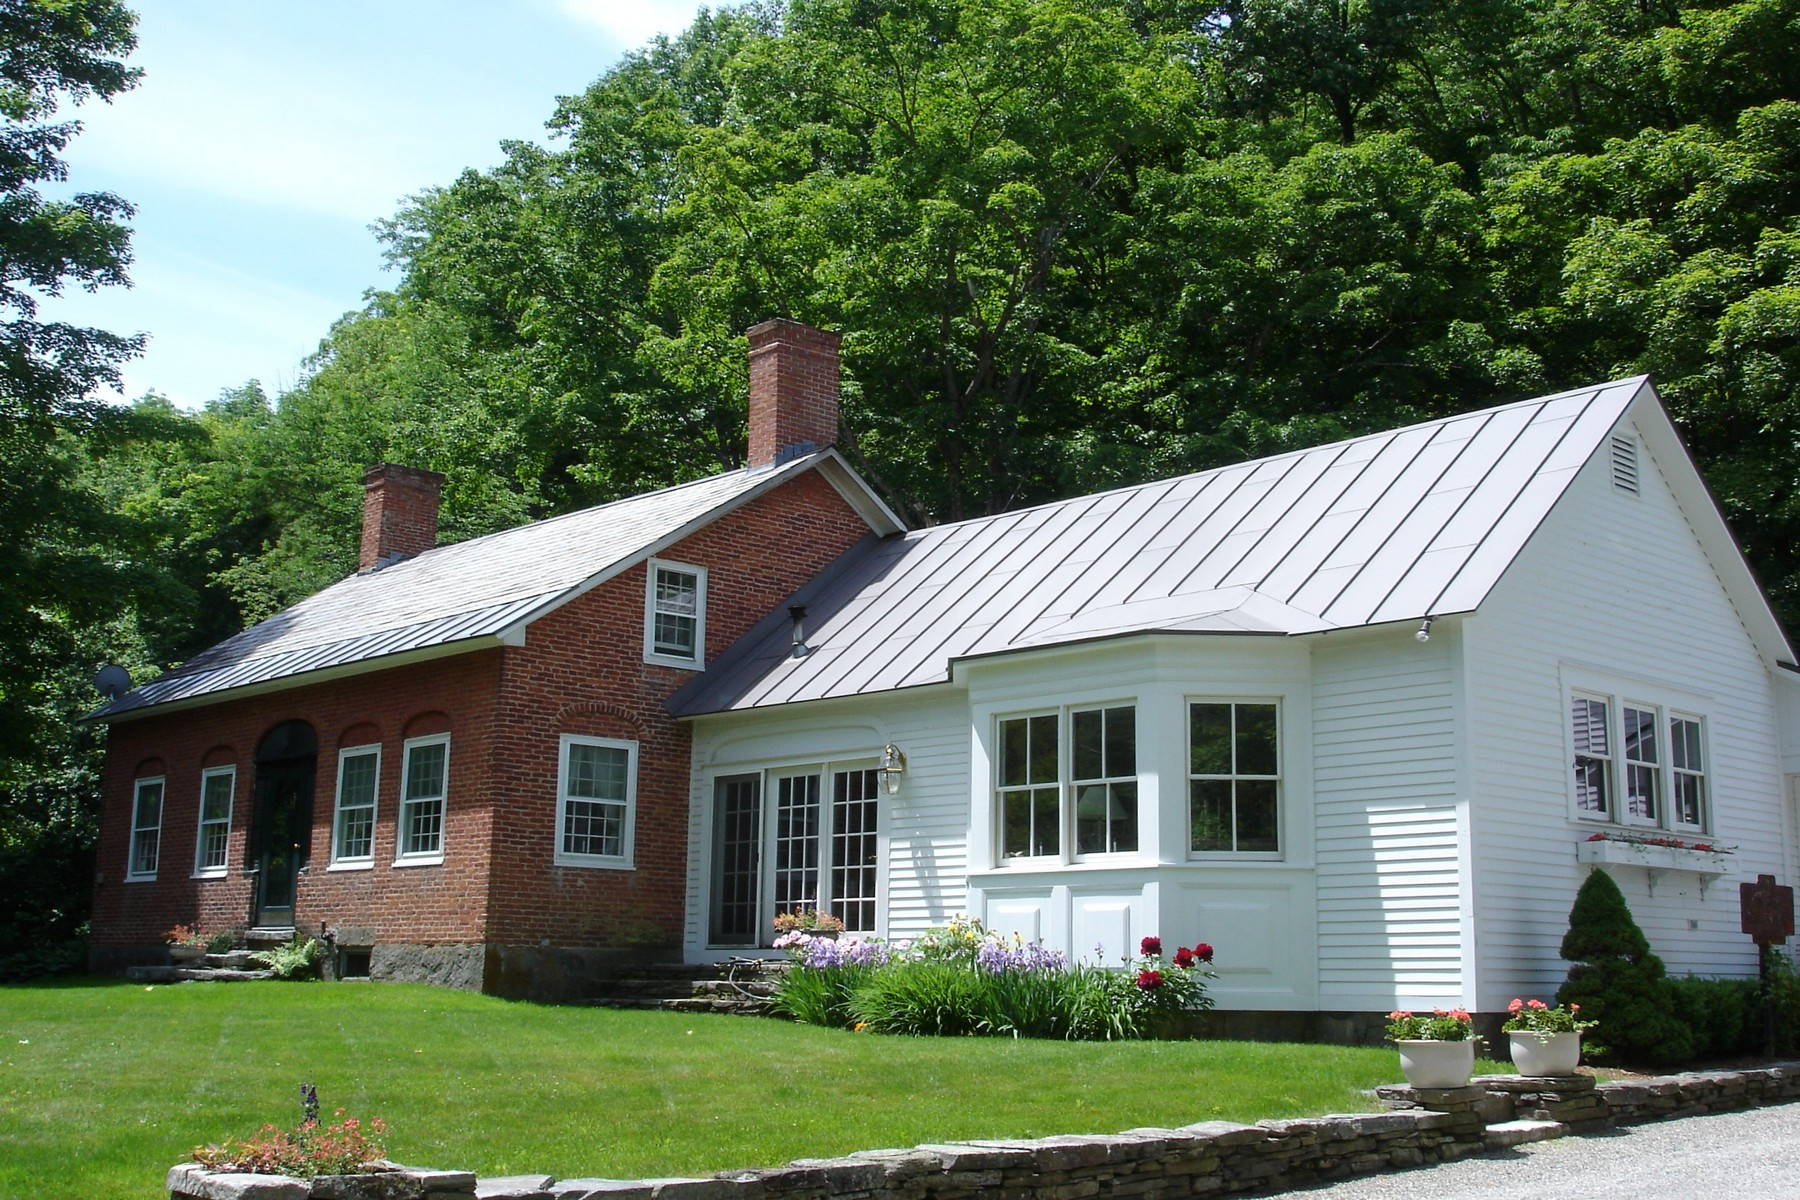 Single Family Homes for Sale at Antique Brick Federal on 100+ Acres 2092 Cavendish Gulf Rd Cavendish, Vermont 05142 United States